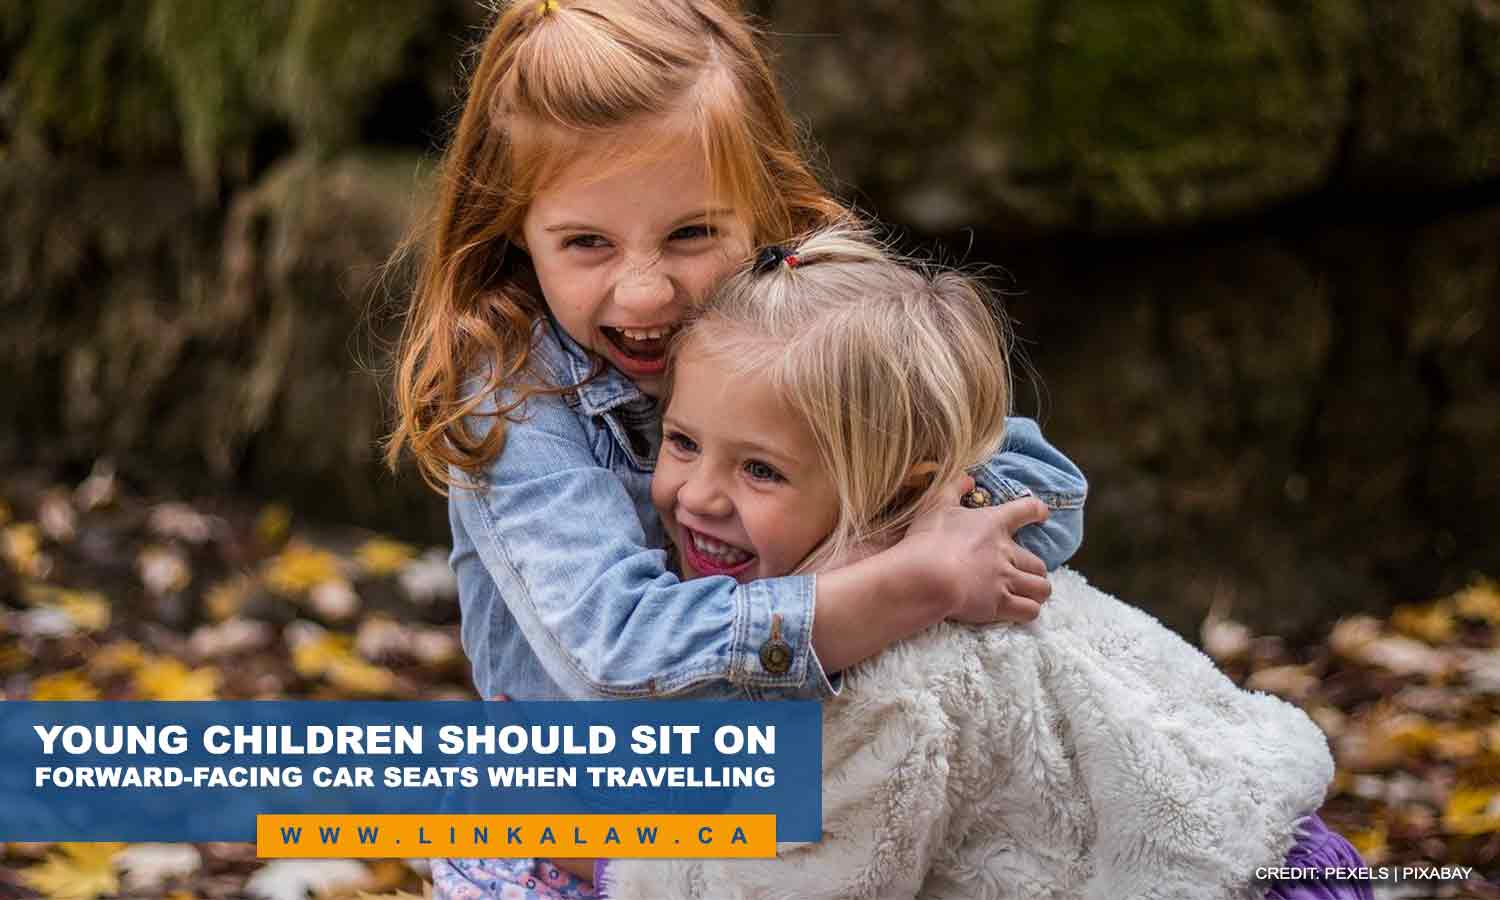 Young children should sit on forward-facing car seats when travelling